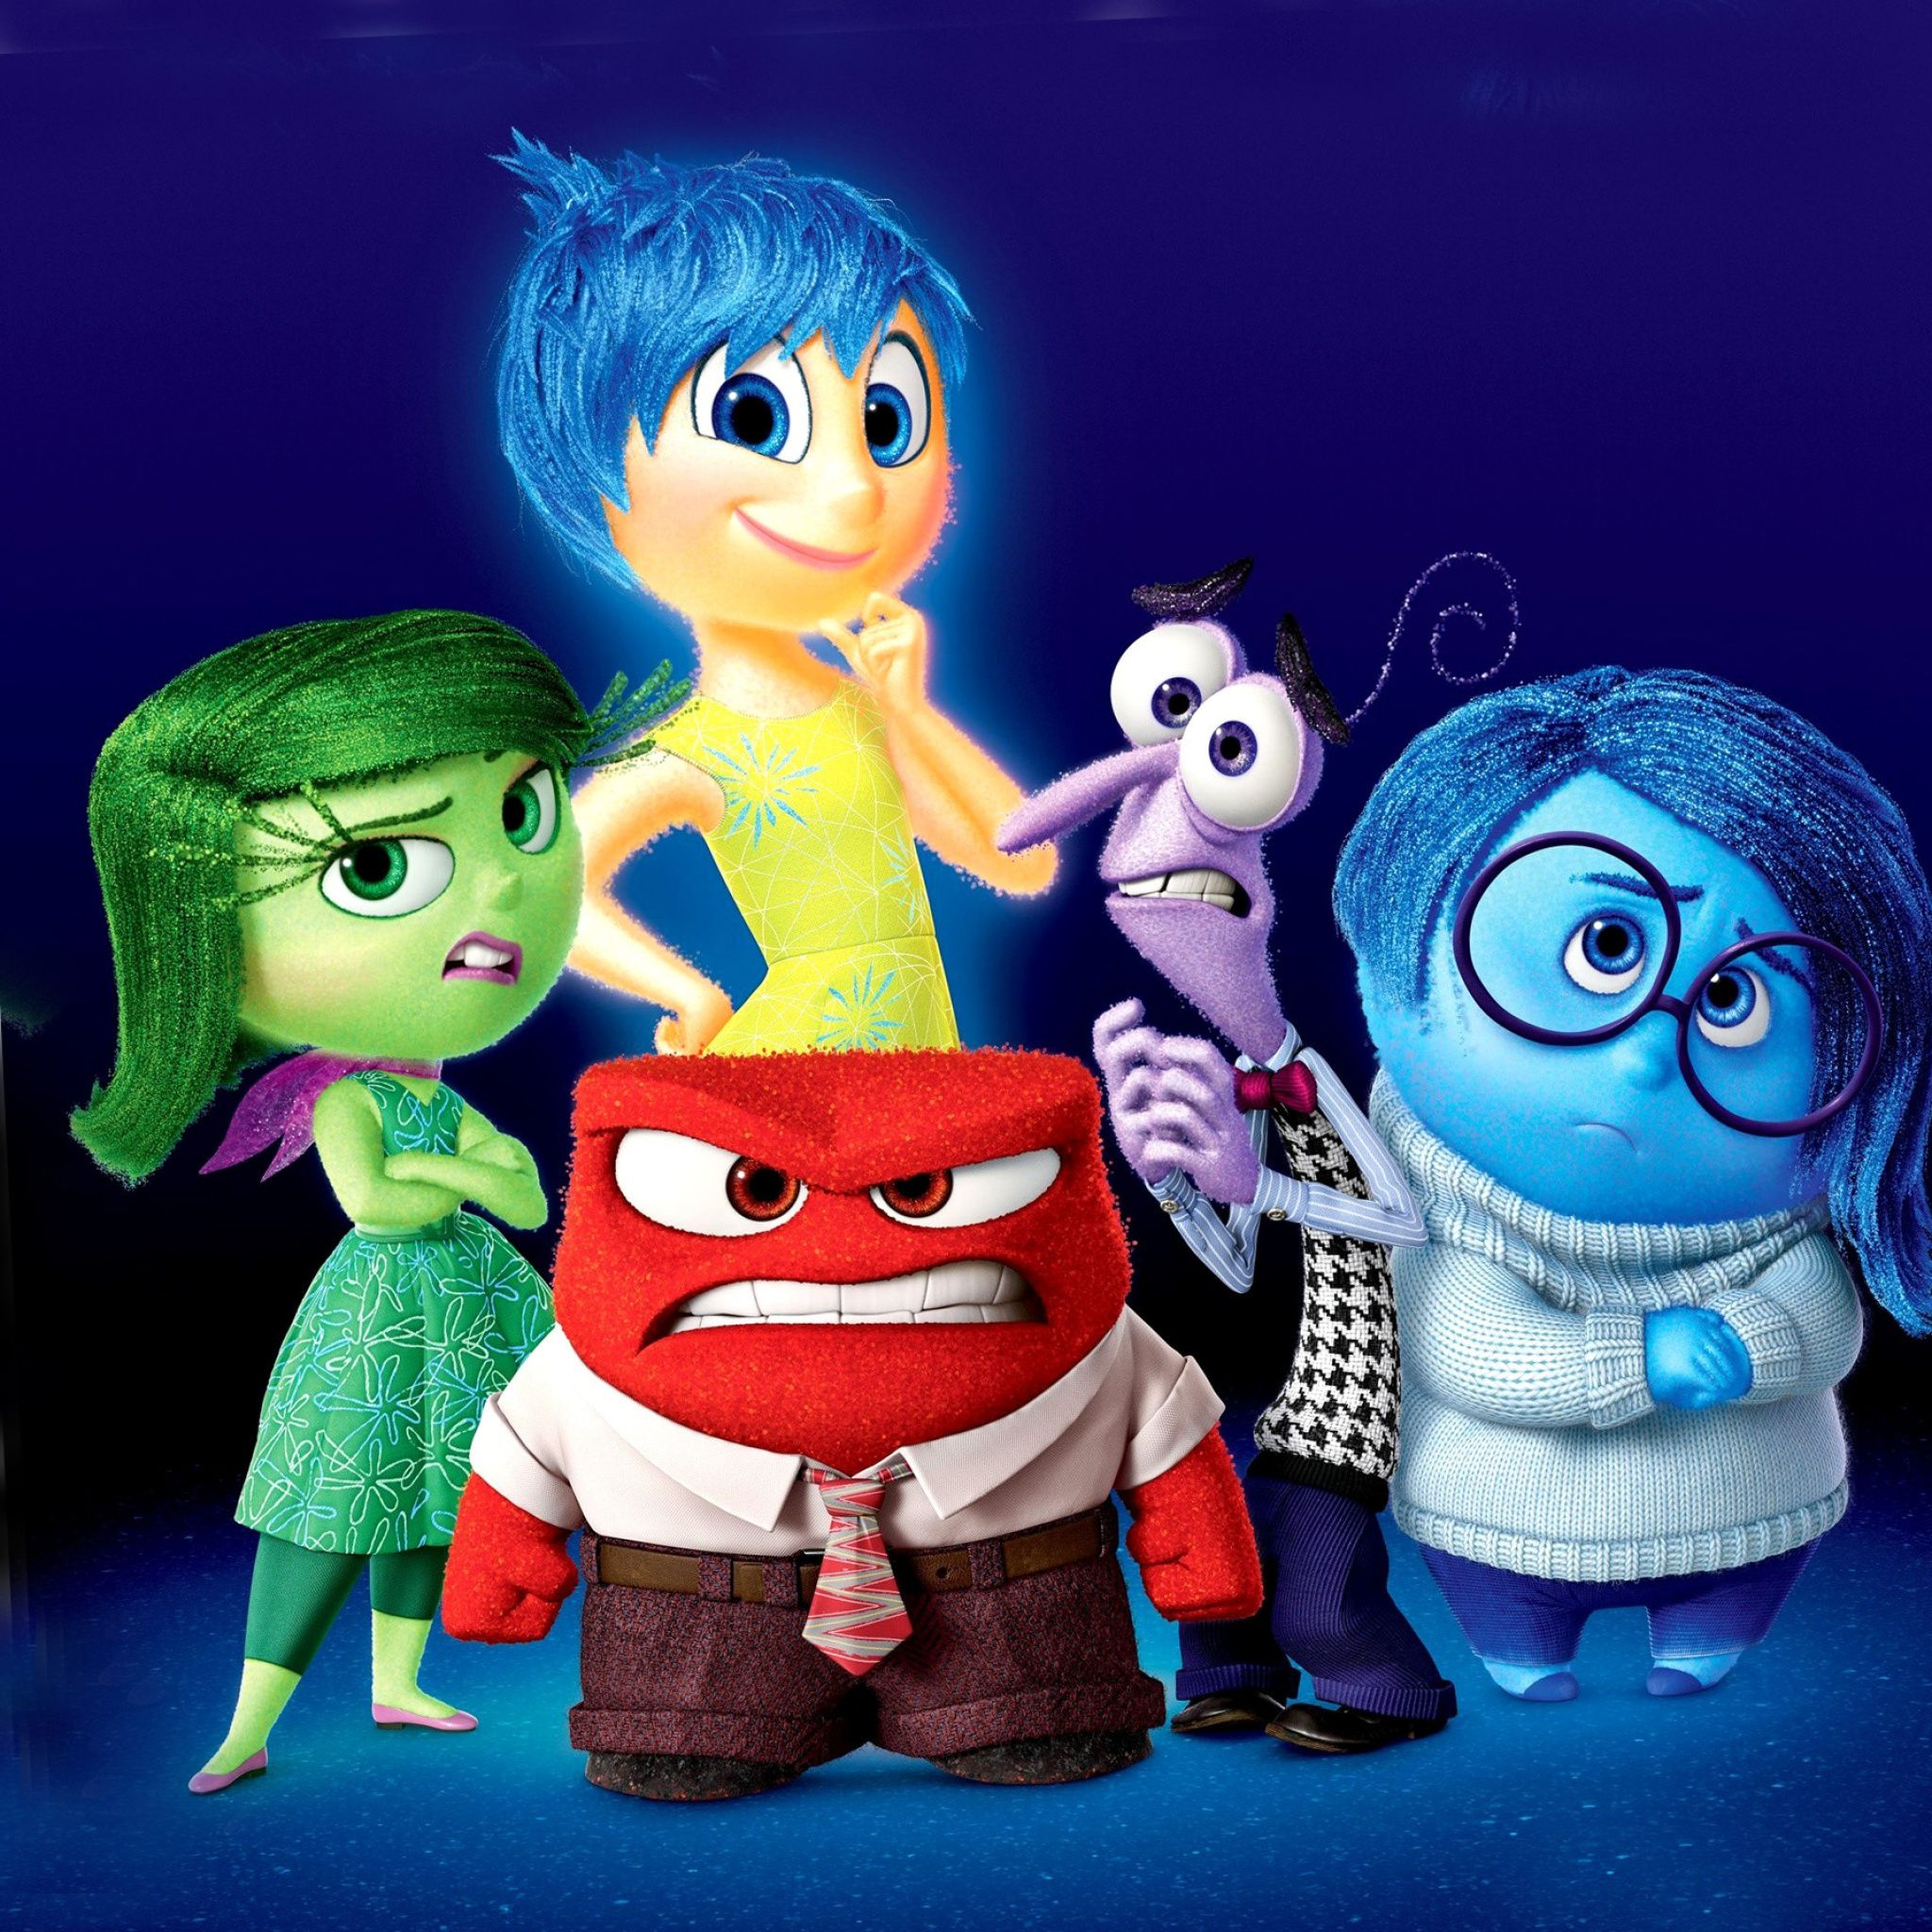 inside out anger disney pixar hd desktop wallpaper | hd wallpapers